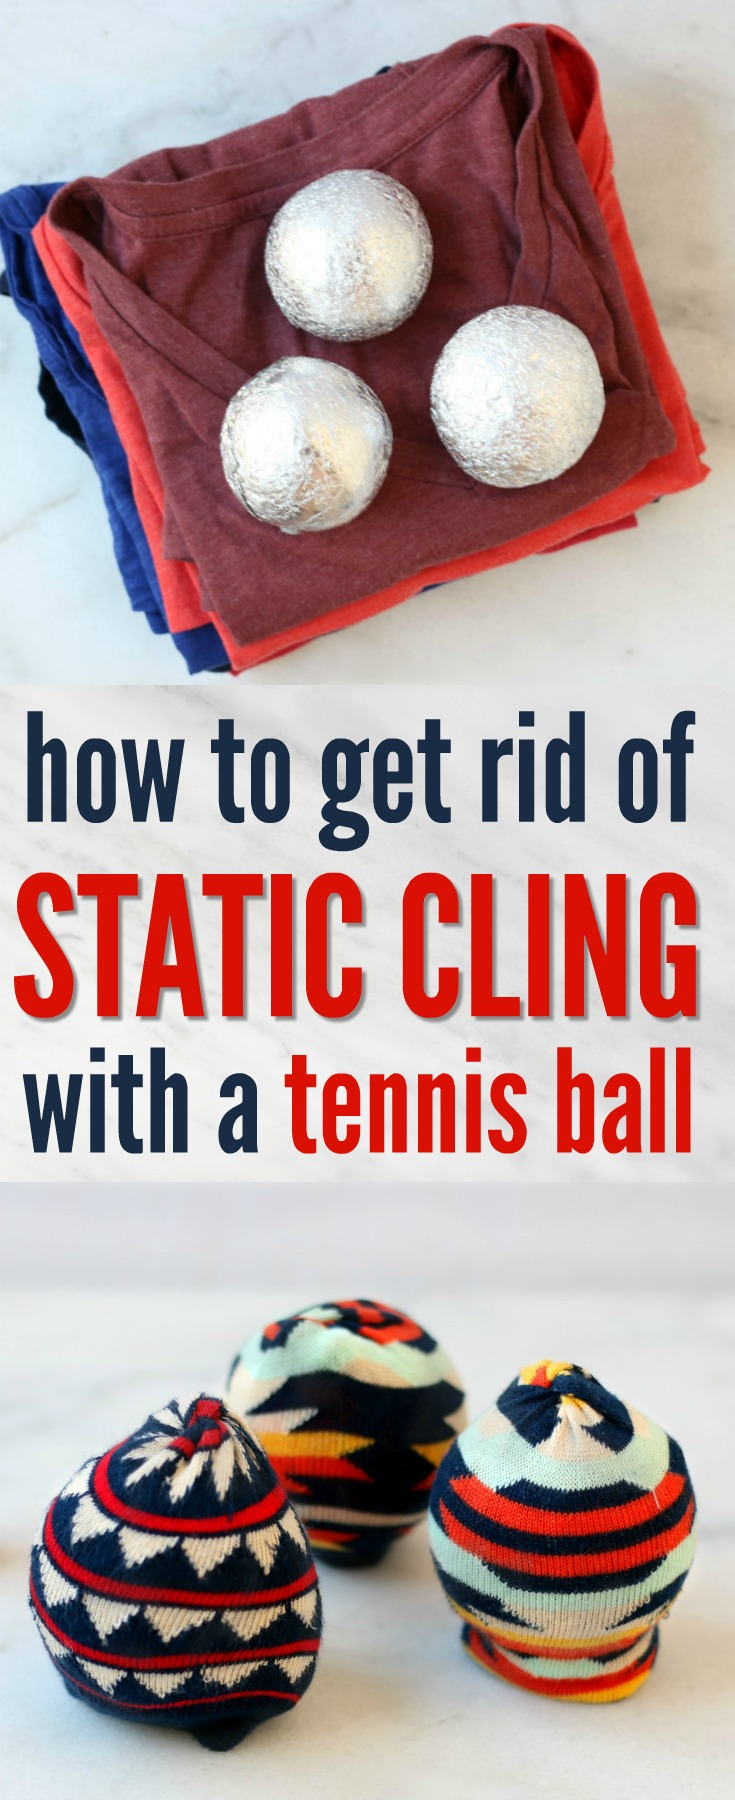 Get Rid of Static Cling